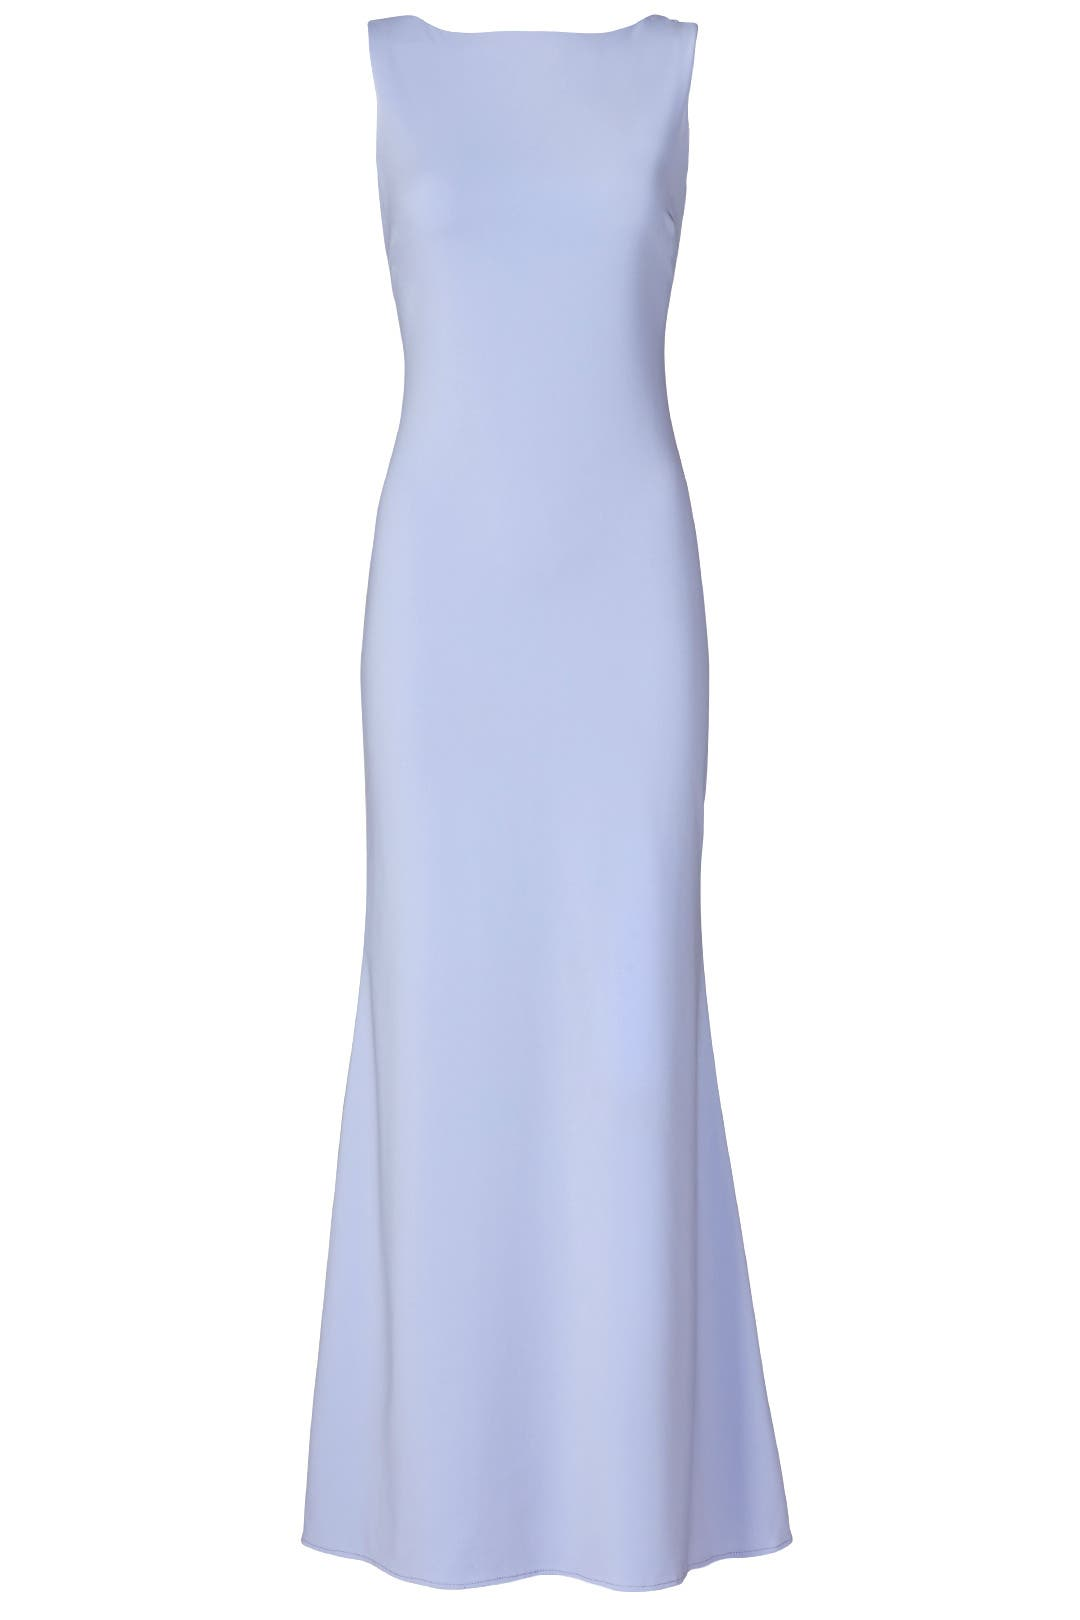 Hidden Waterfall Gown by Badgley Mischka for $95 - $115 | Rent the ...